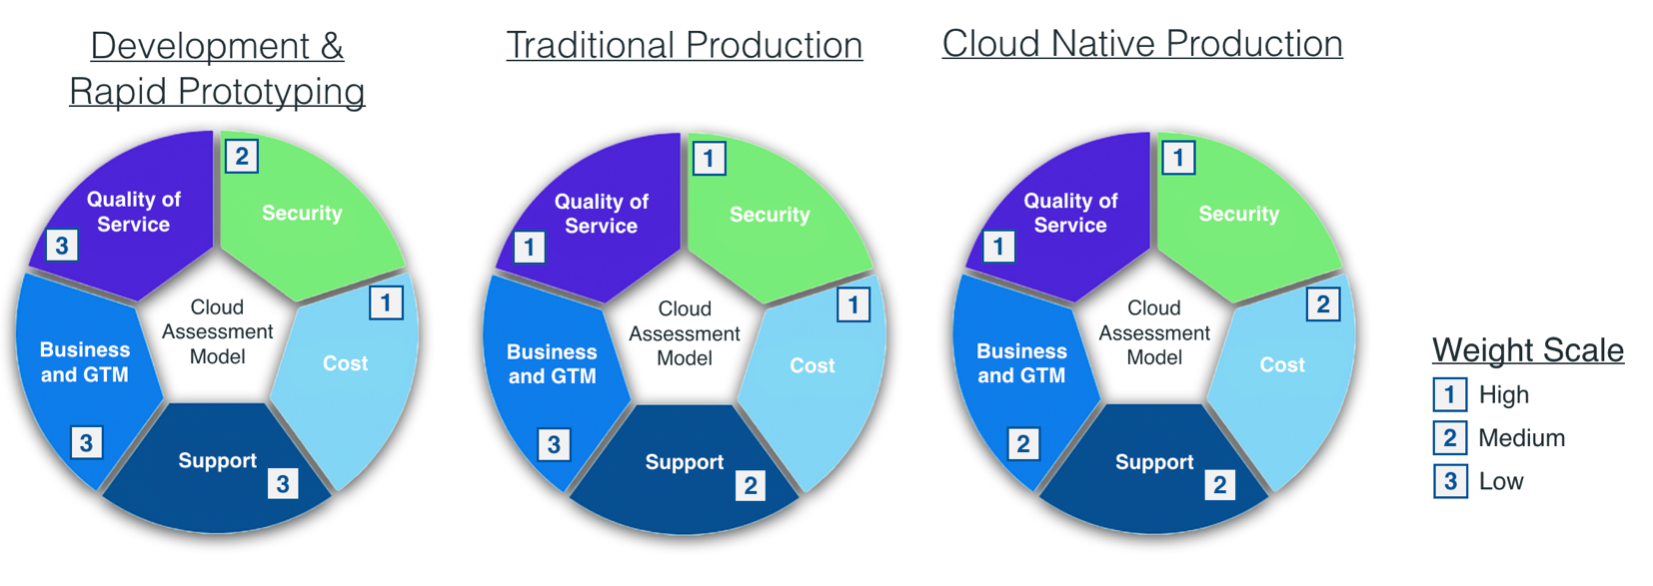 The three types of cloud workloads